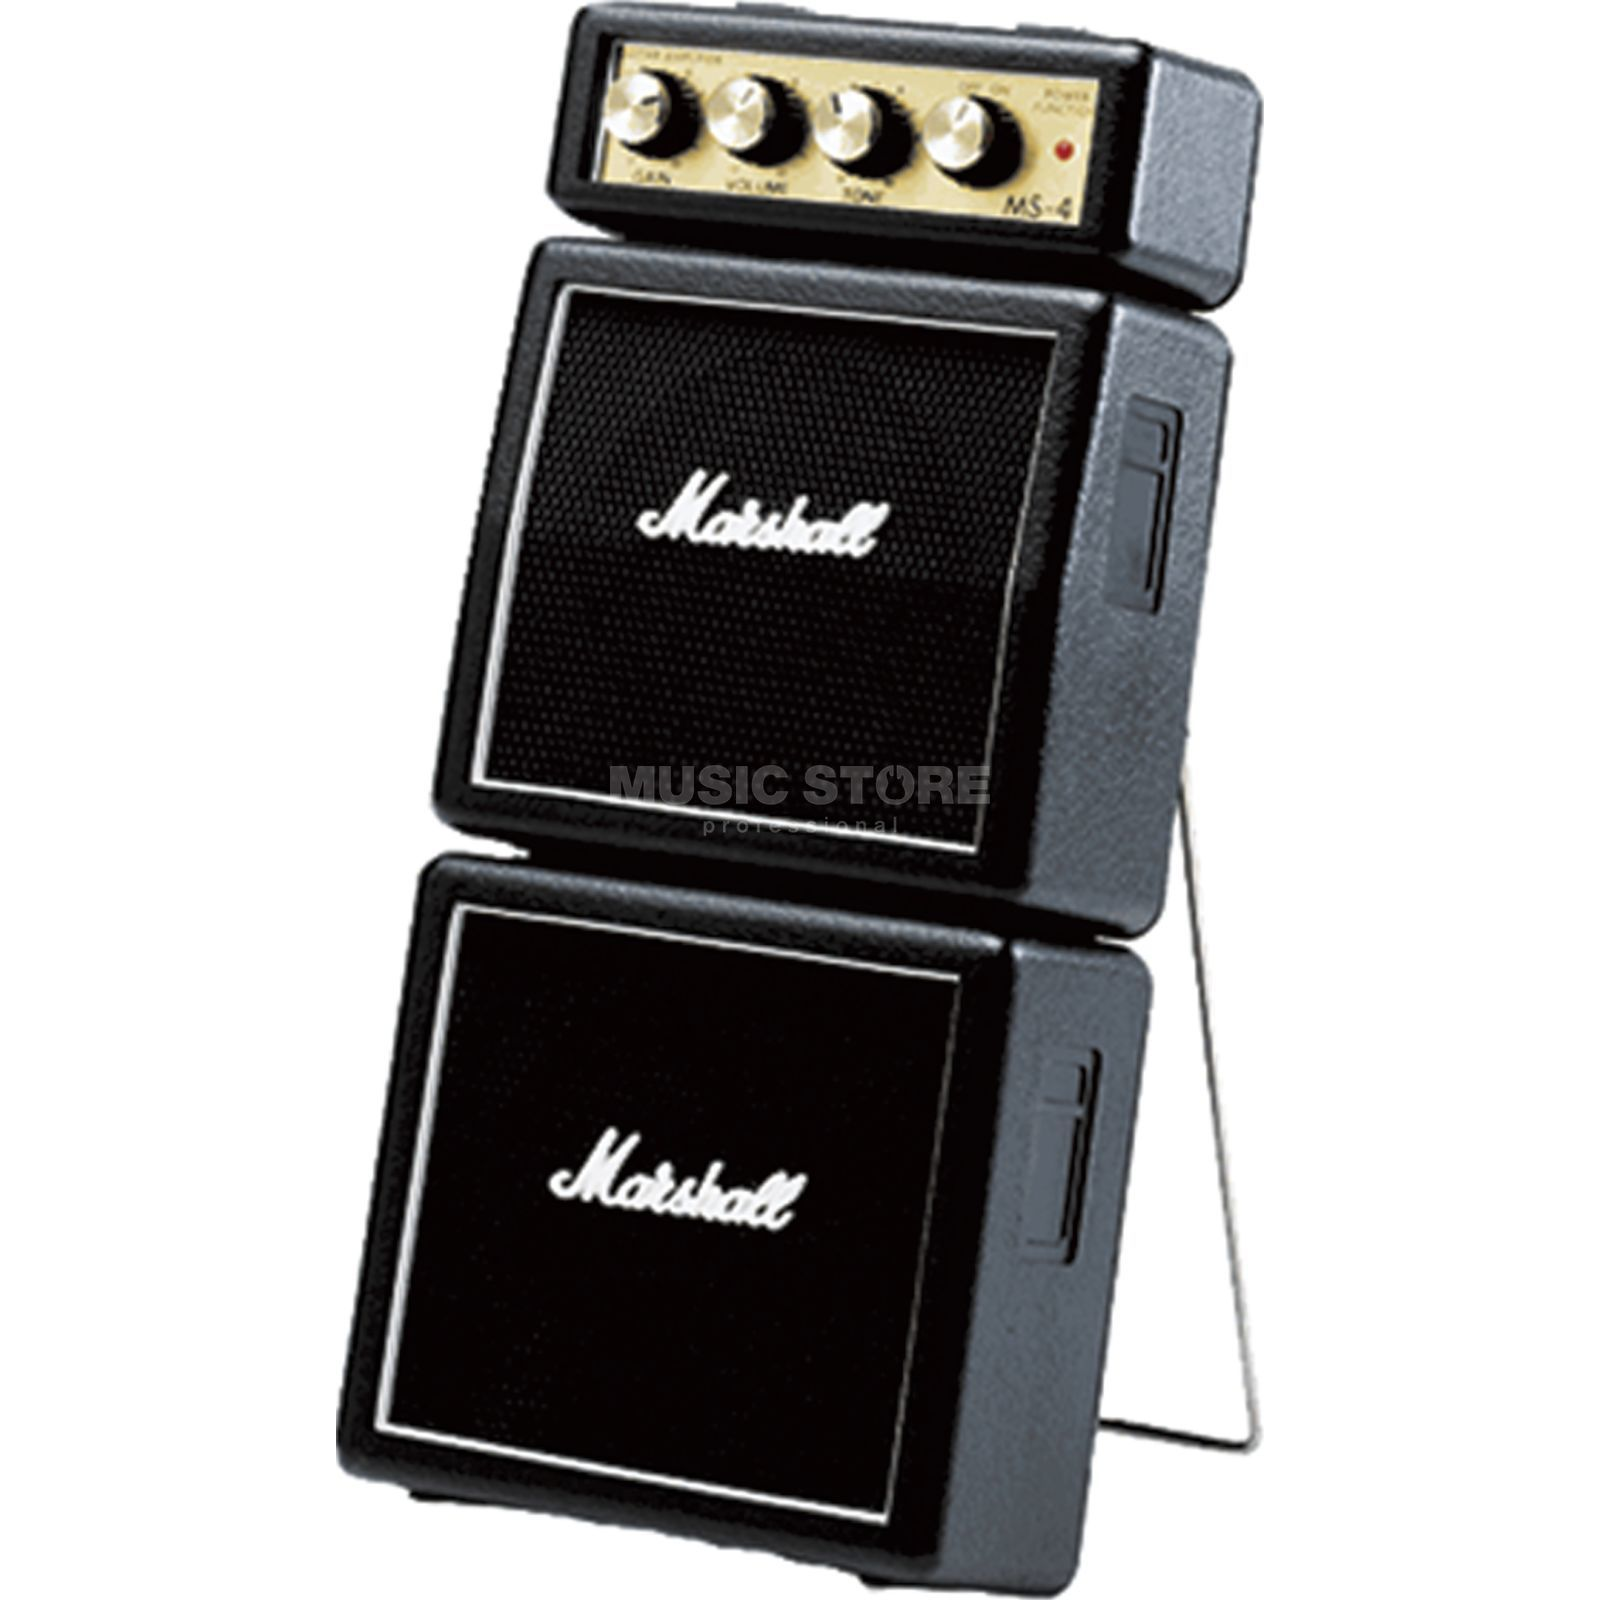 Marshall MS-4 Micro Stack Guitar Amp Co mbo   Product Image